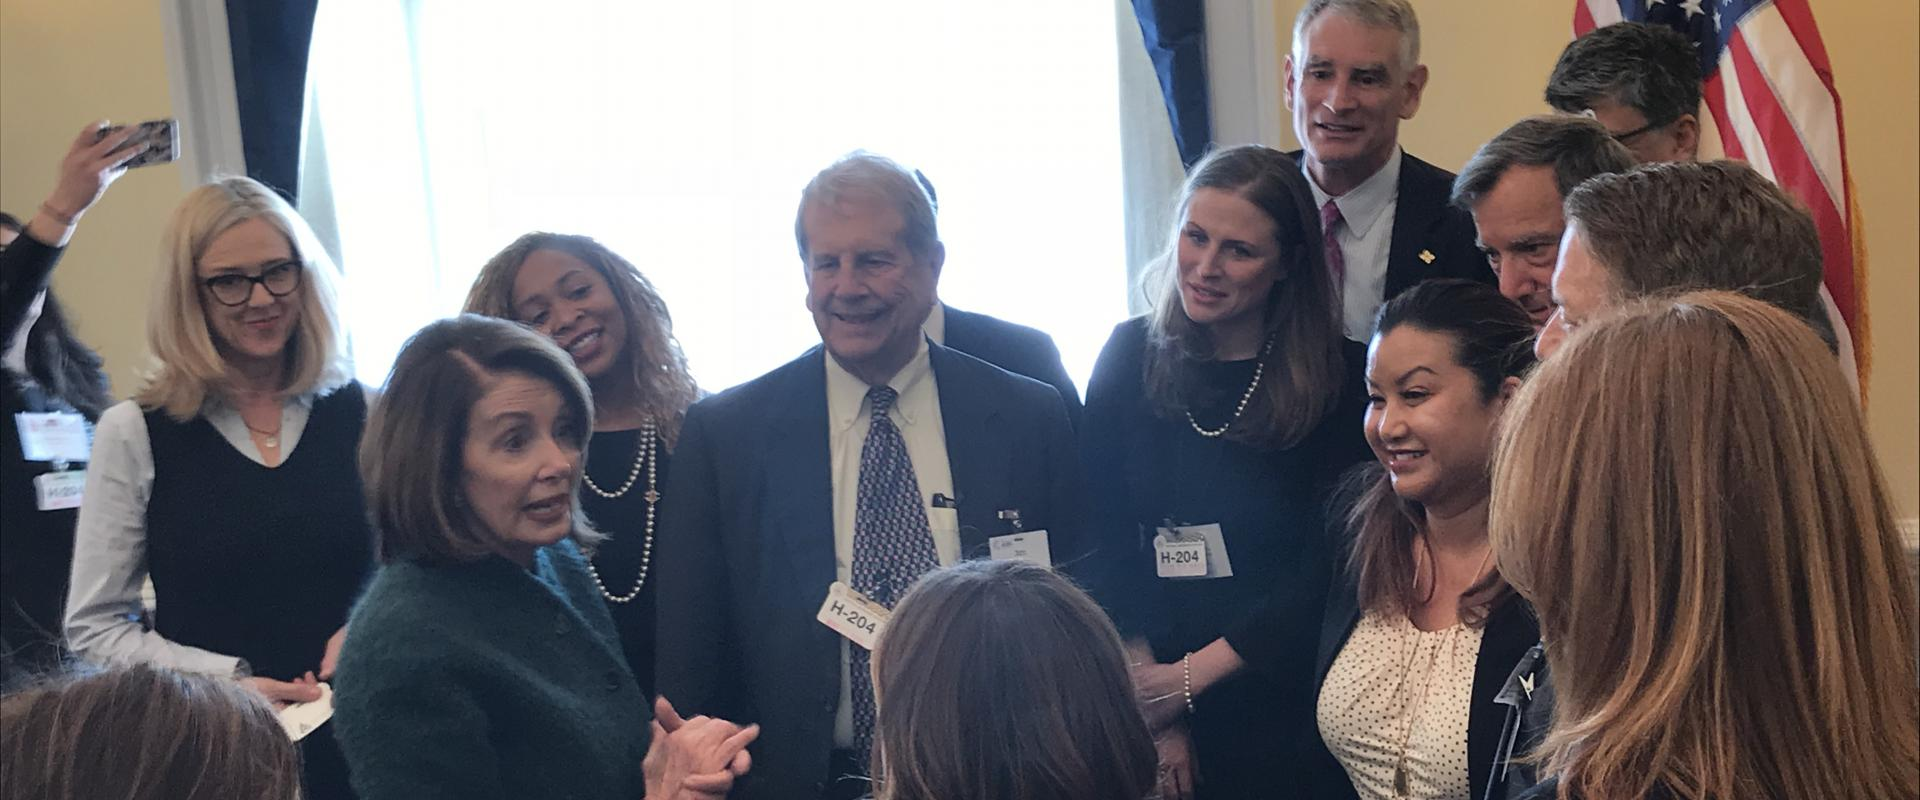 Congresswoman Pelosi meets with members of San Francisco Chamber of Commerce where they discussed the investments the successes she secured in the omnibus funding bill to combat homelessness, create affordable housing, and protect transportation investmen